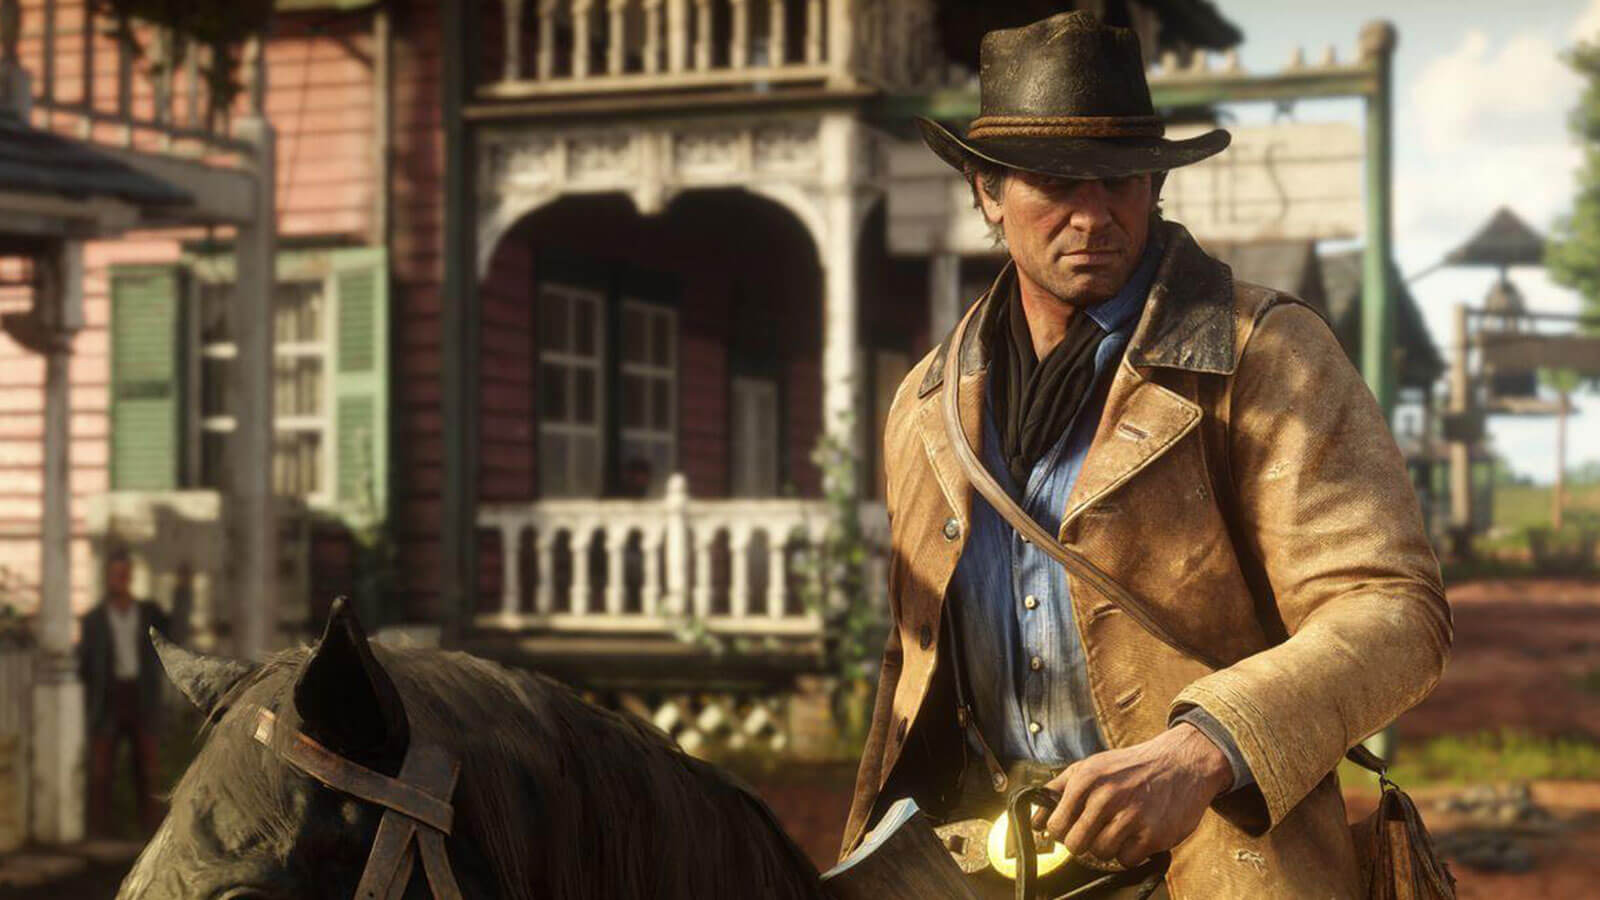 Red Dead Redemption 2's protagonist Arthur Morgan rides into town on his horse.